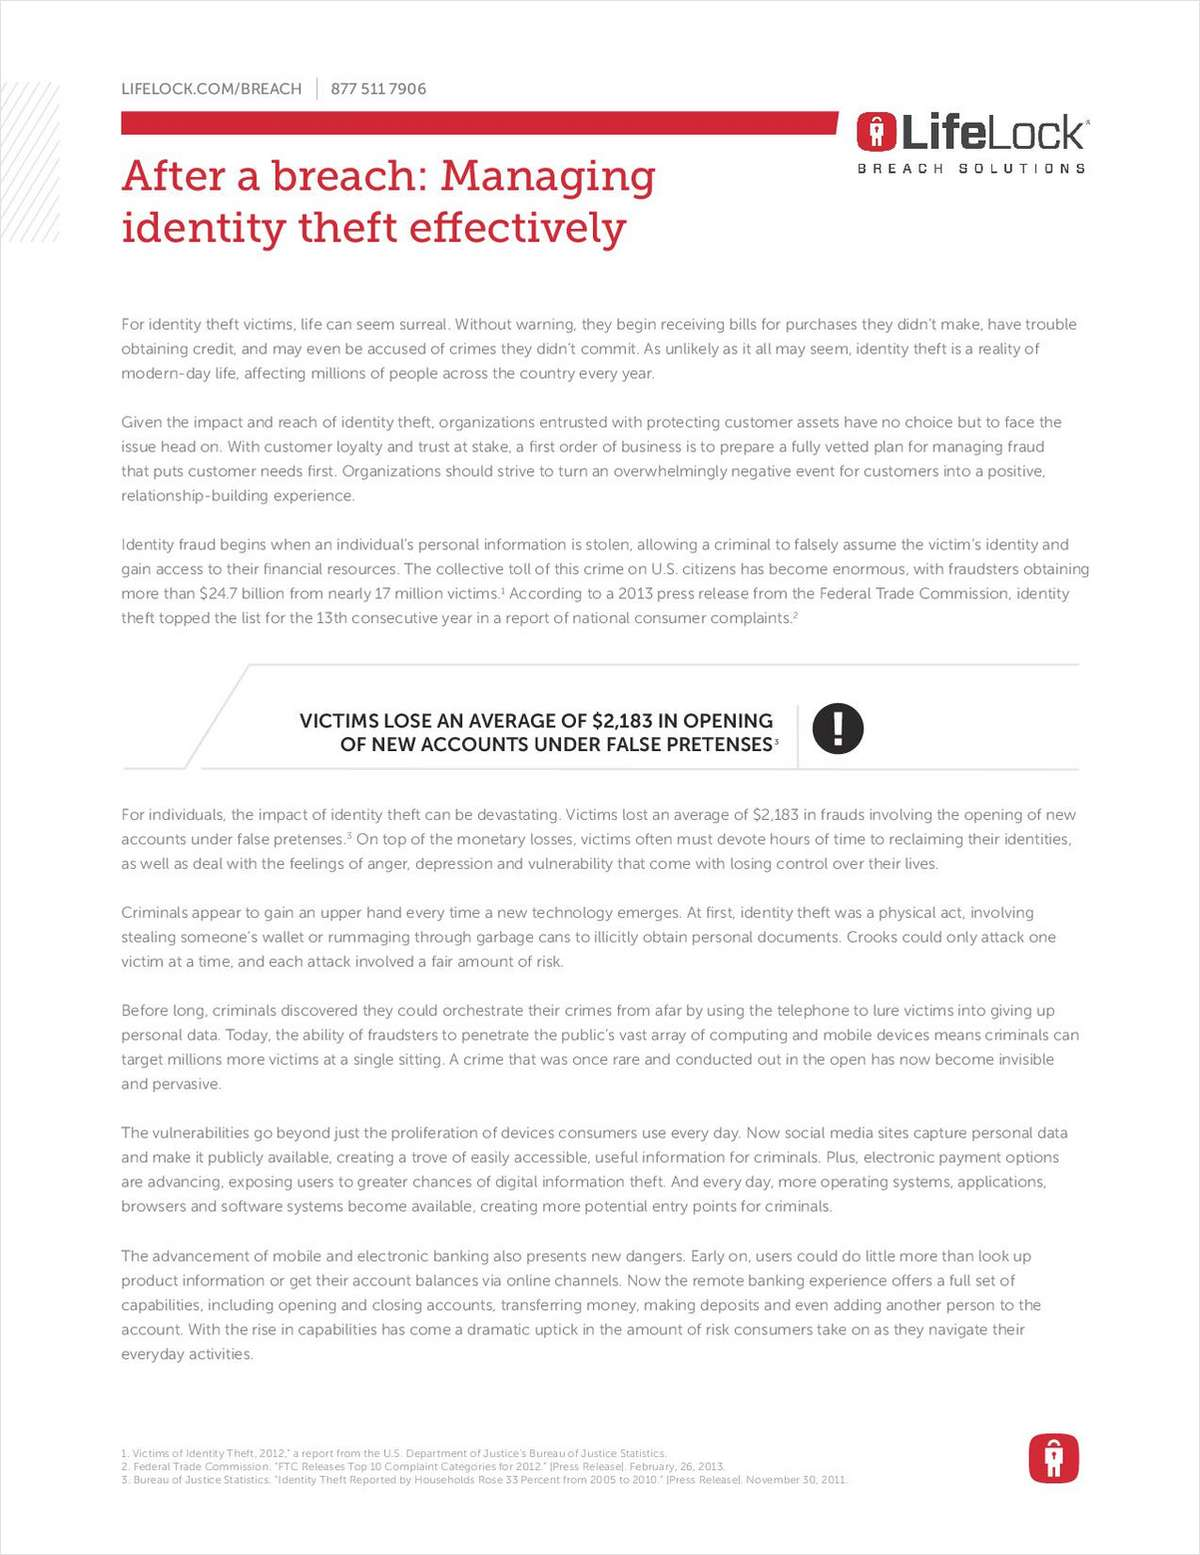 After A Data Breach: Managing Identity Theft Effectively